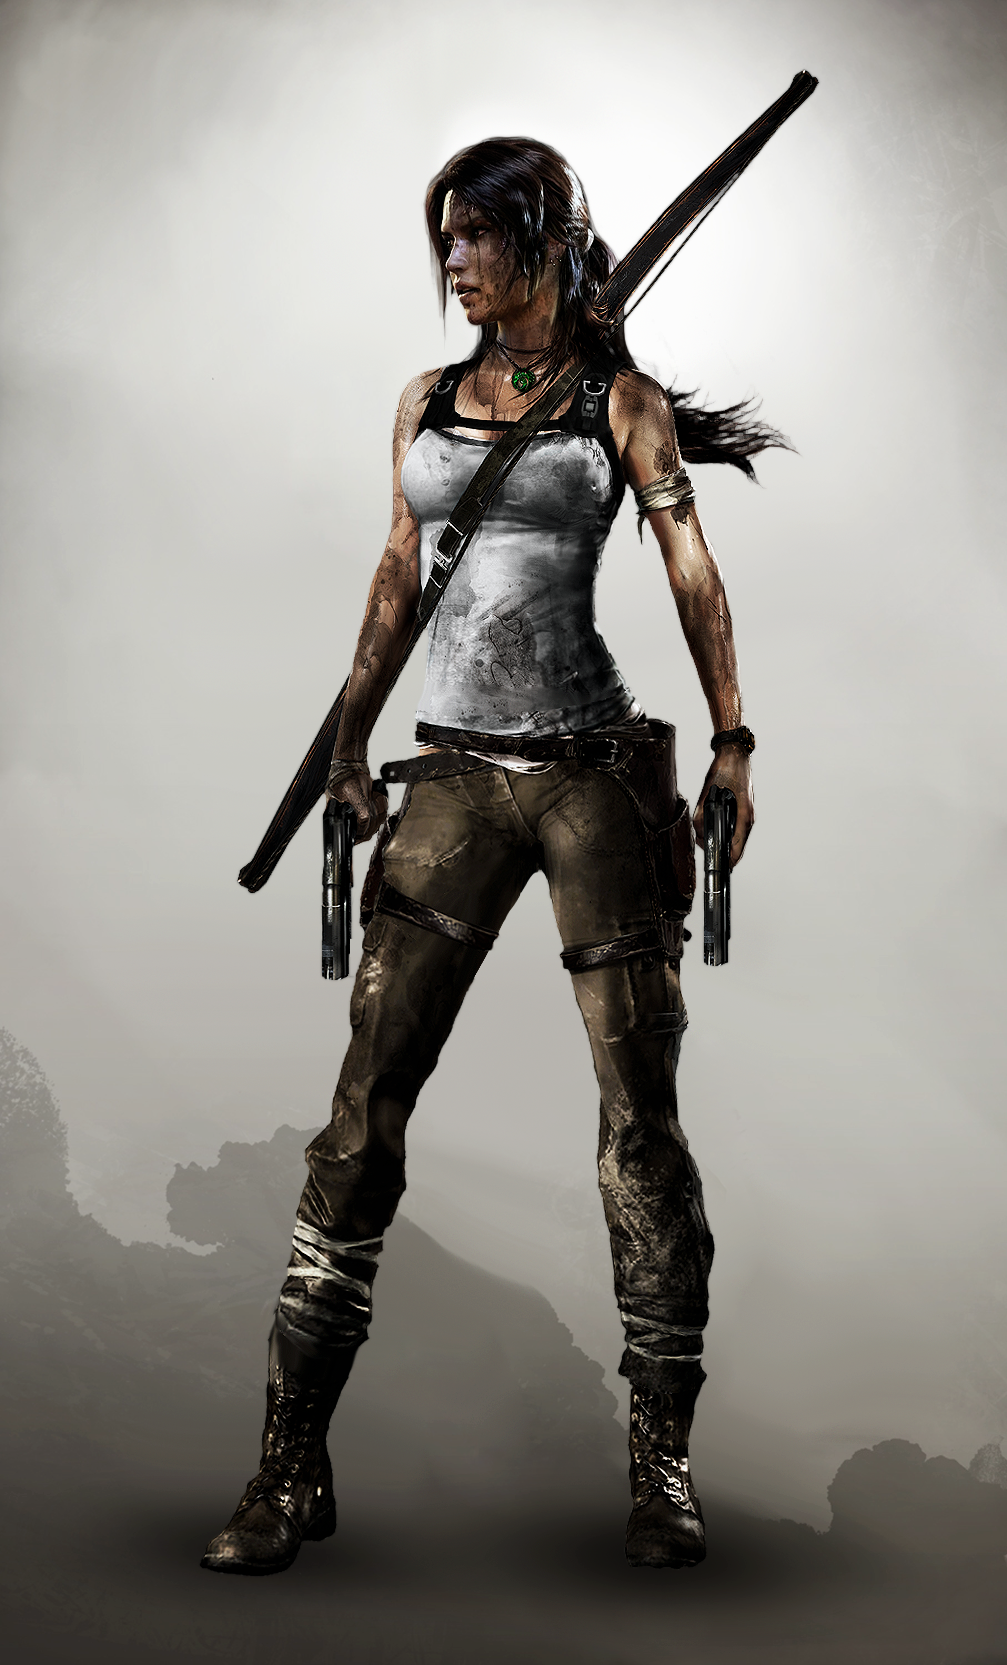 Photoshopped Artwork by TombRaider-Survivor